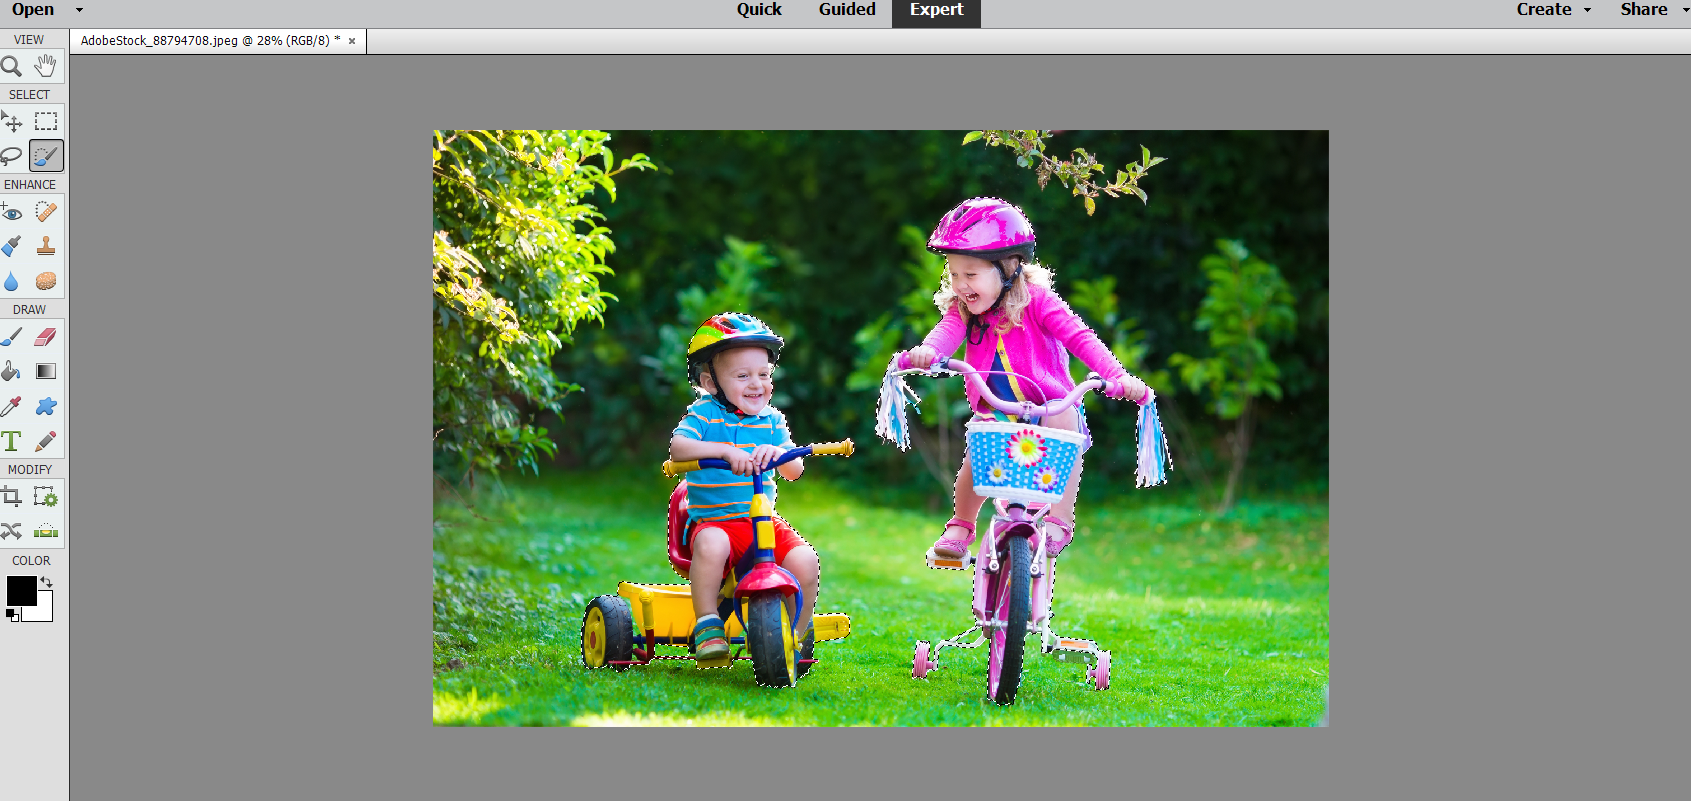 Photoshop Elements automatically selects a subject in your photo